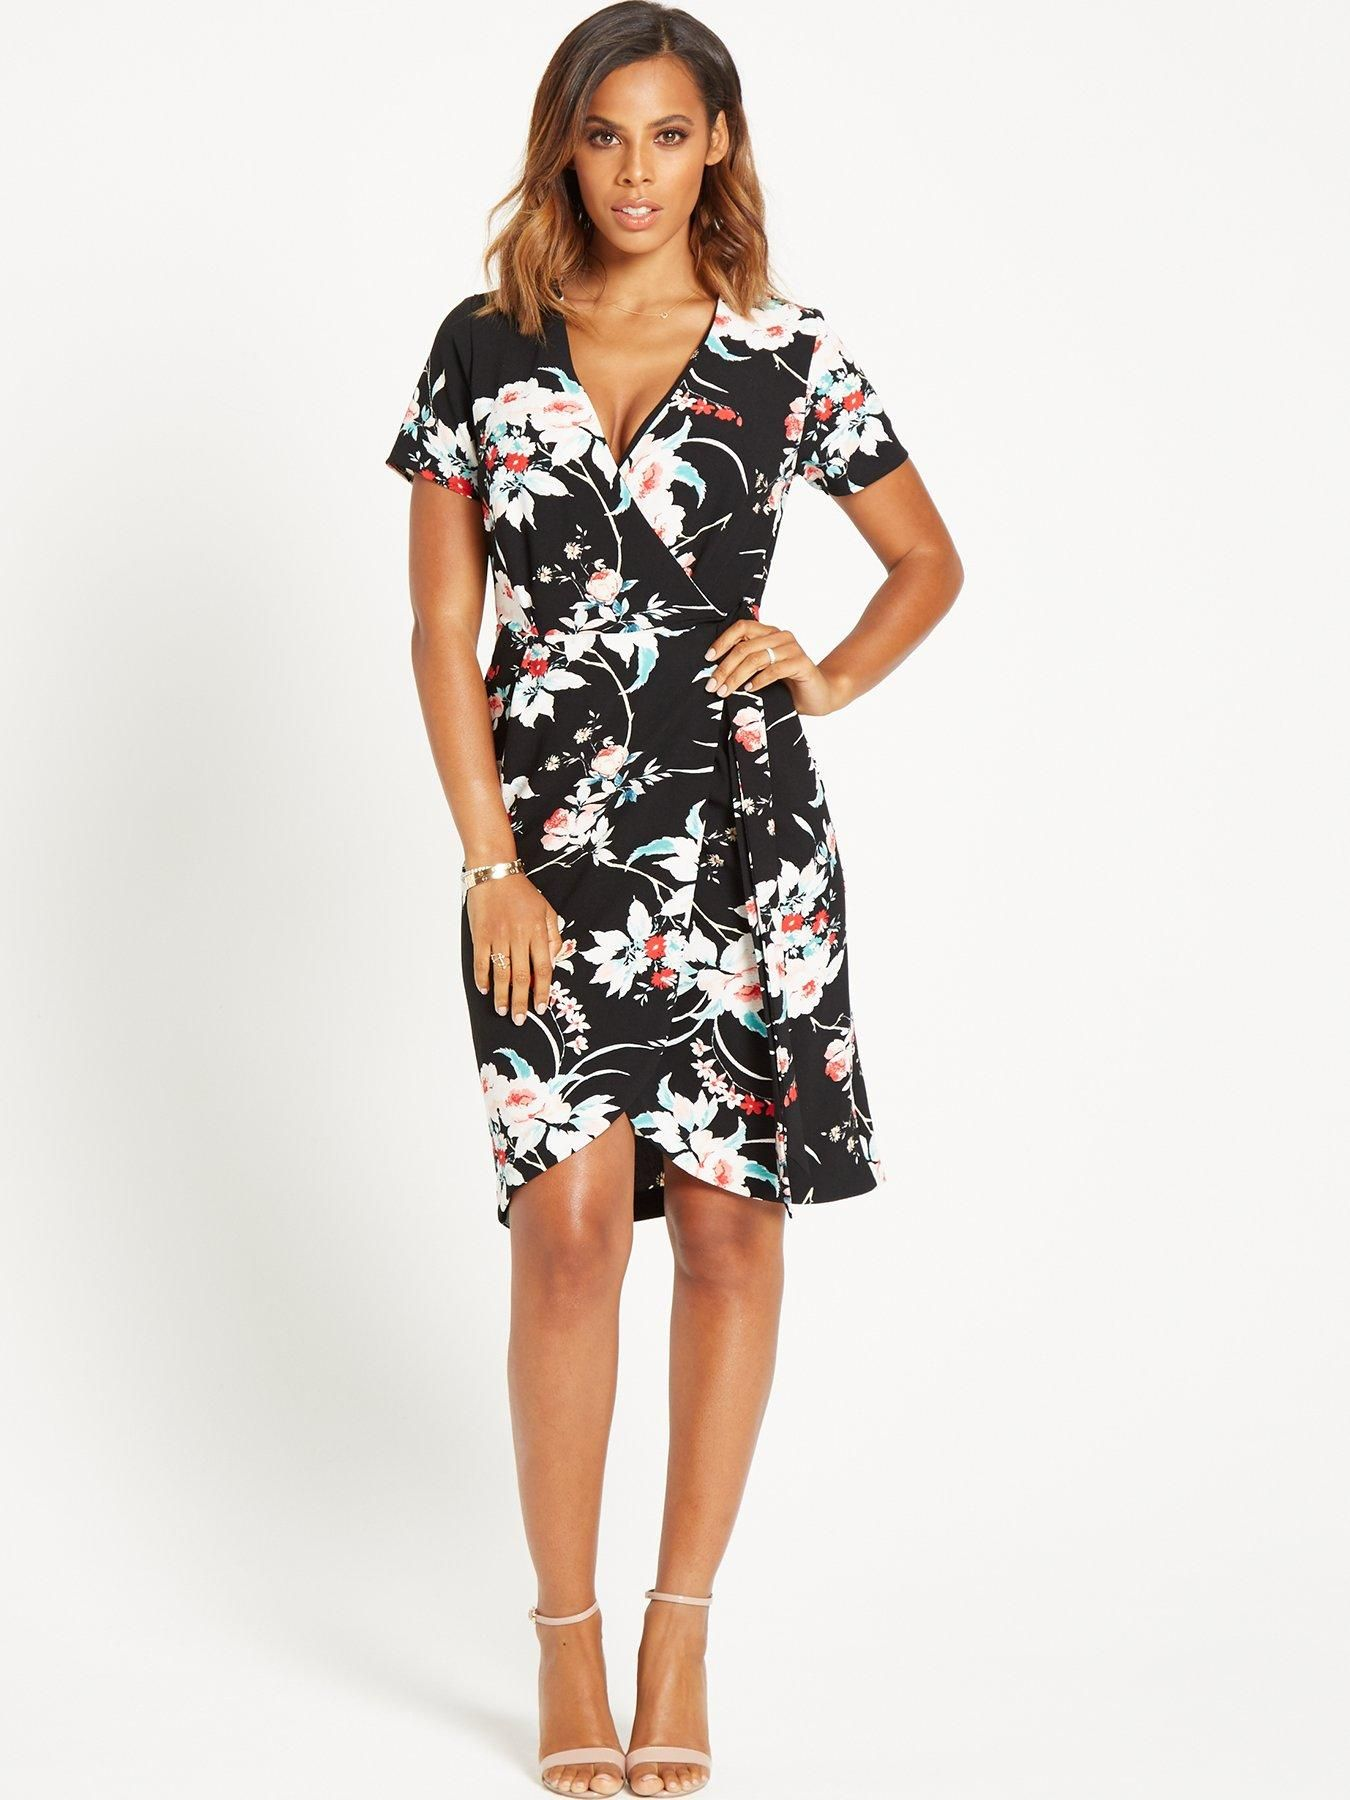 765fa366ba Rochelle Humes Wrap Dress   Very